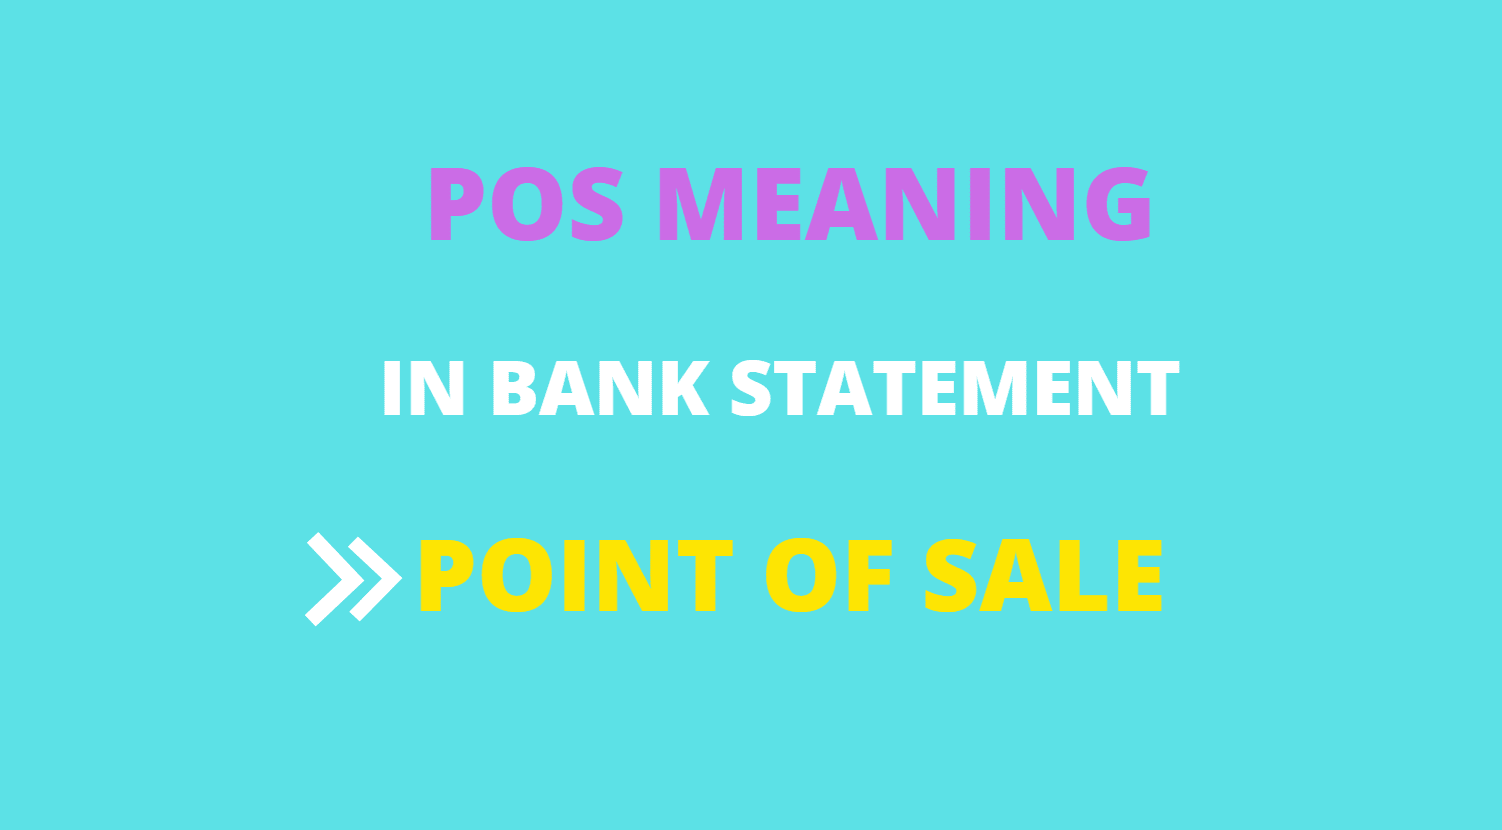 pos meaning in bank statement